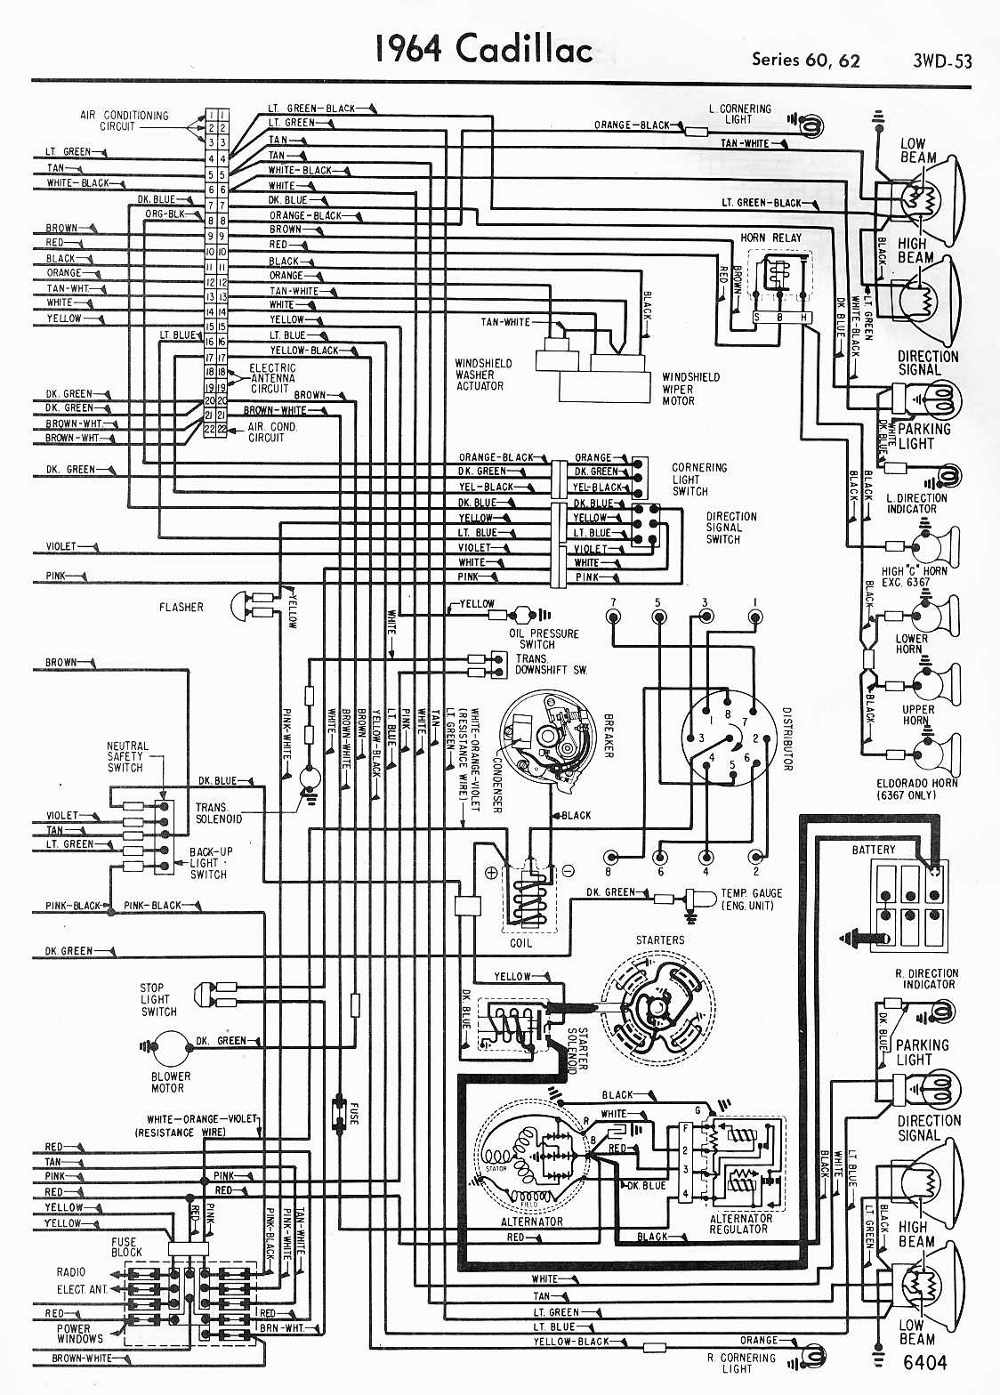 medium resolution of 64 cadillac wiring diagram example electrical wiring diagram u2022 rh olkha co 1999 cadillac deville radio